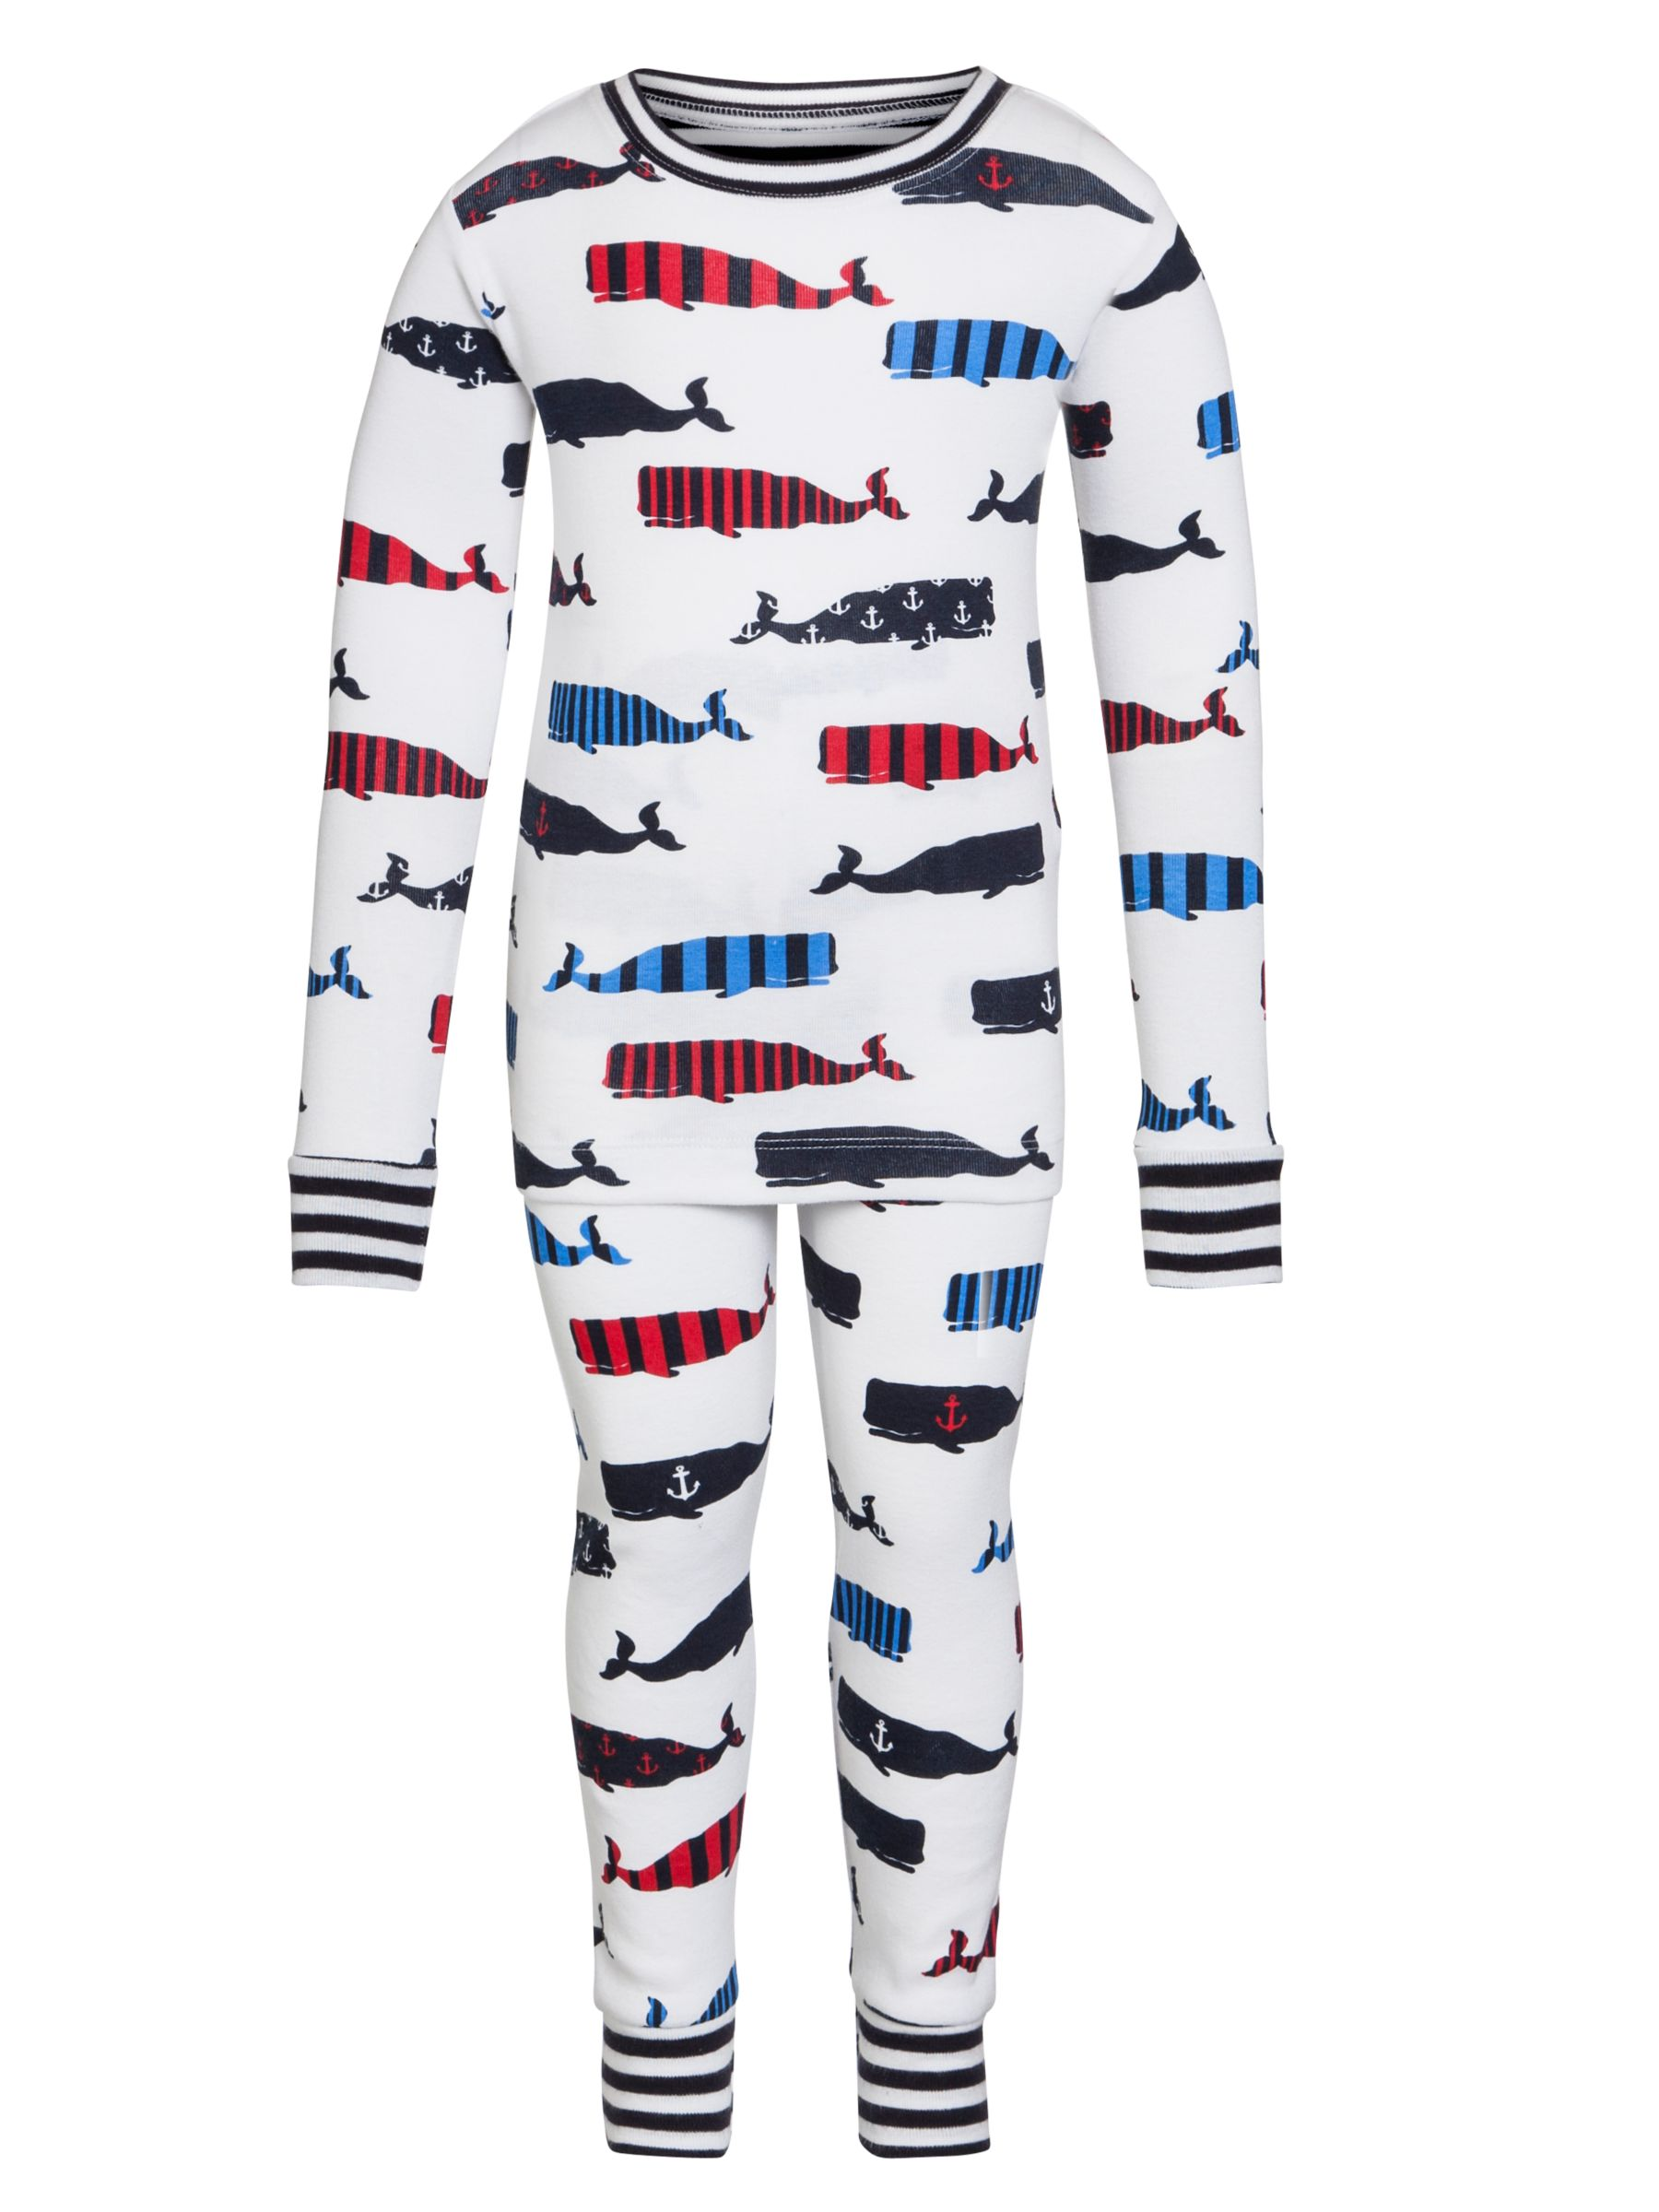 Hatley Boys' Long Sleeve Whale Pyjamas, White/Multi